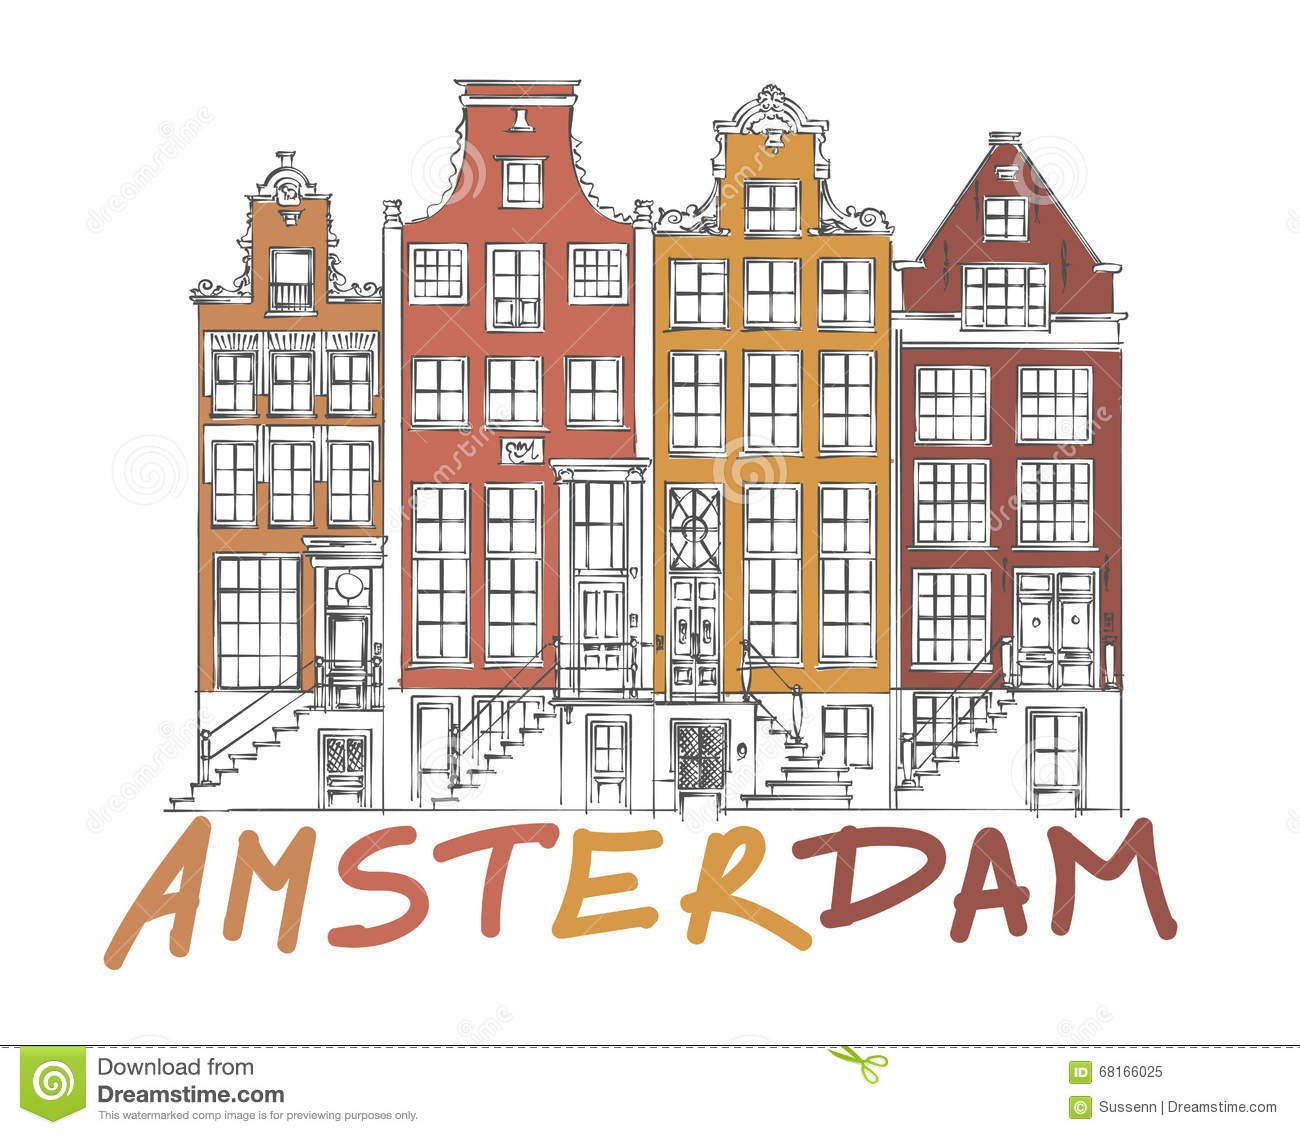 dessin de ville d39amsterdam illustration de vecteur With dessin plan de maison 3 dessin de ville damsterdam illustration de vecteur